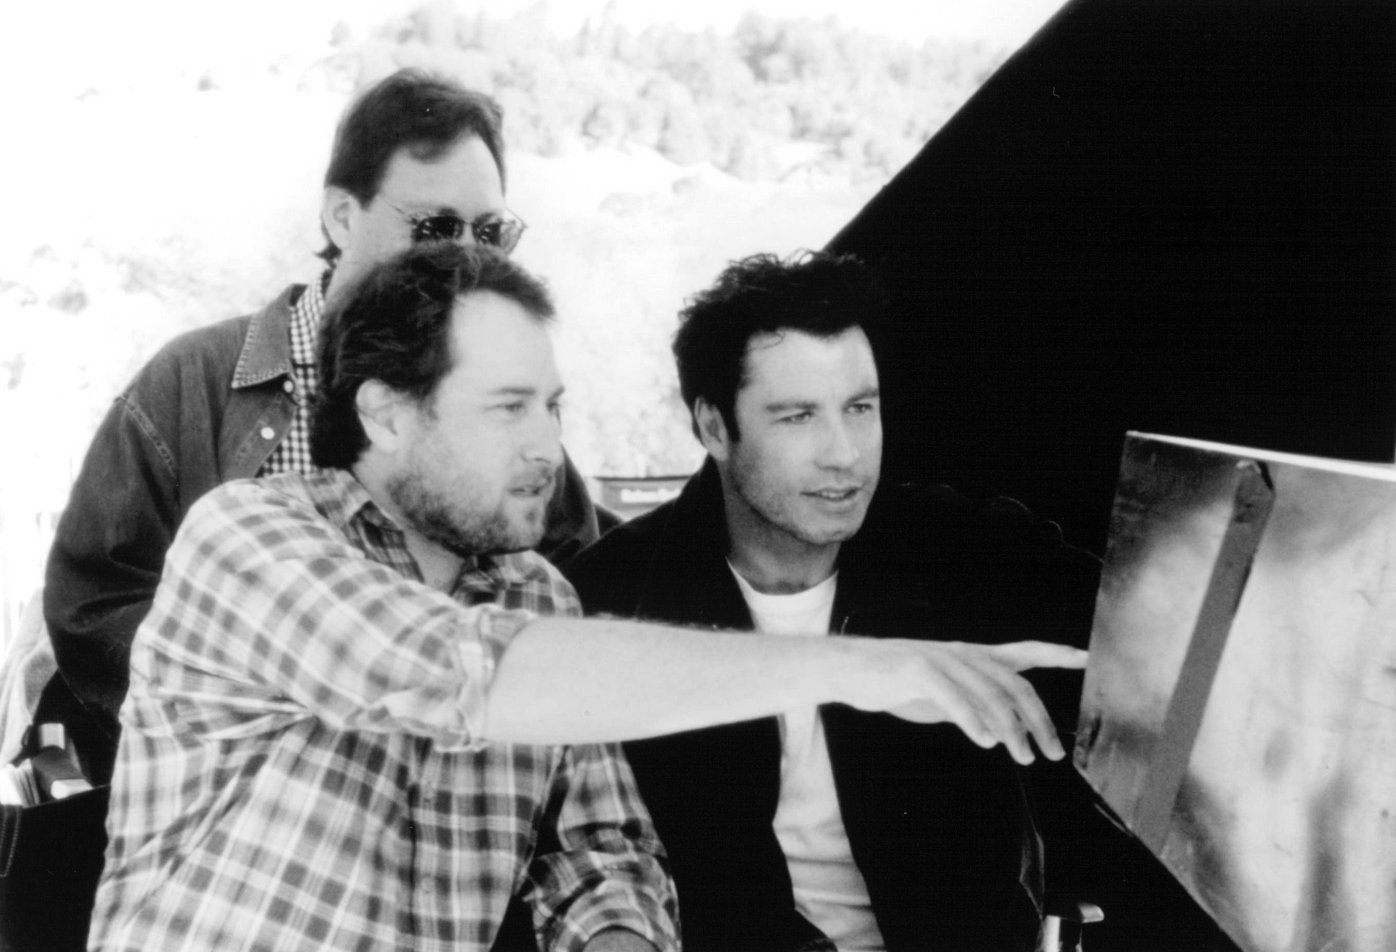 a study of the 1996 film phenomenon by john travolta The movie squanders the charms of john travolta and a talented cast july 3, 1996 | by jay boyar sentinel movie critic imagine a honey-coated episode of the x-files and.